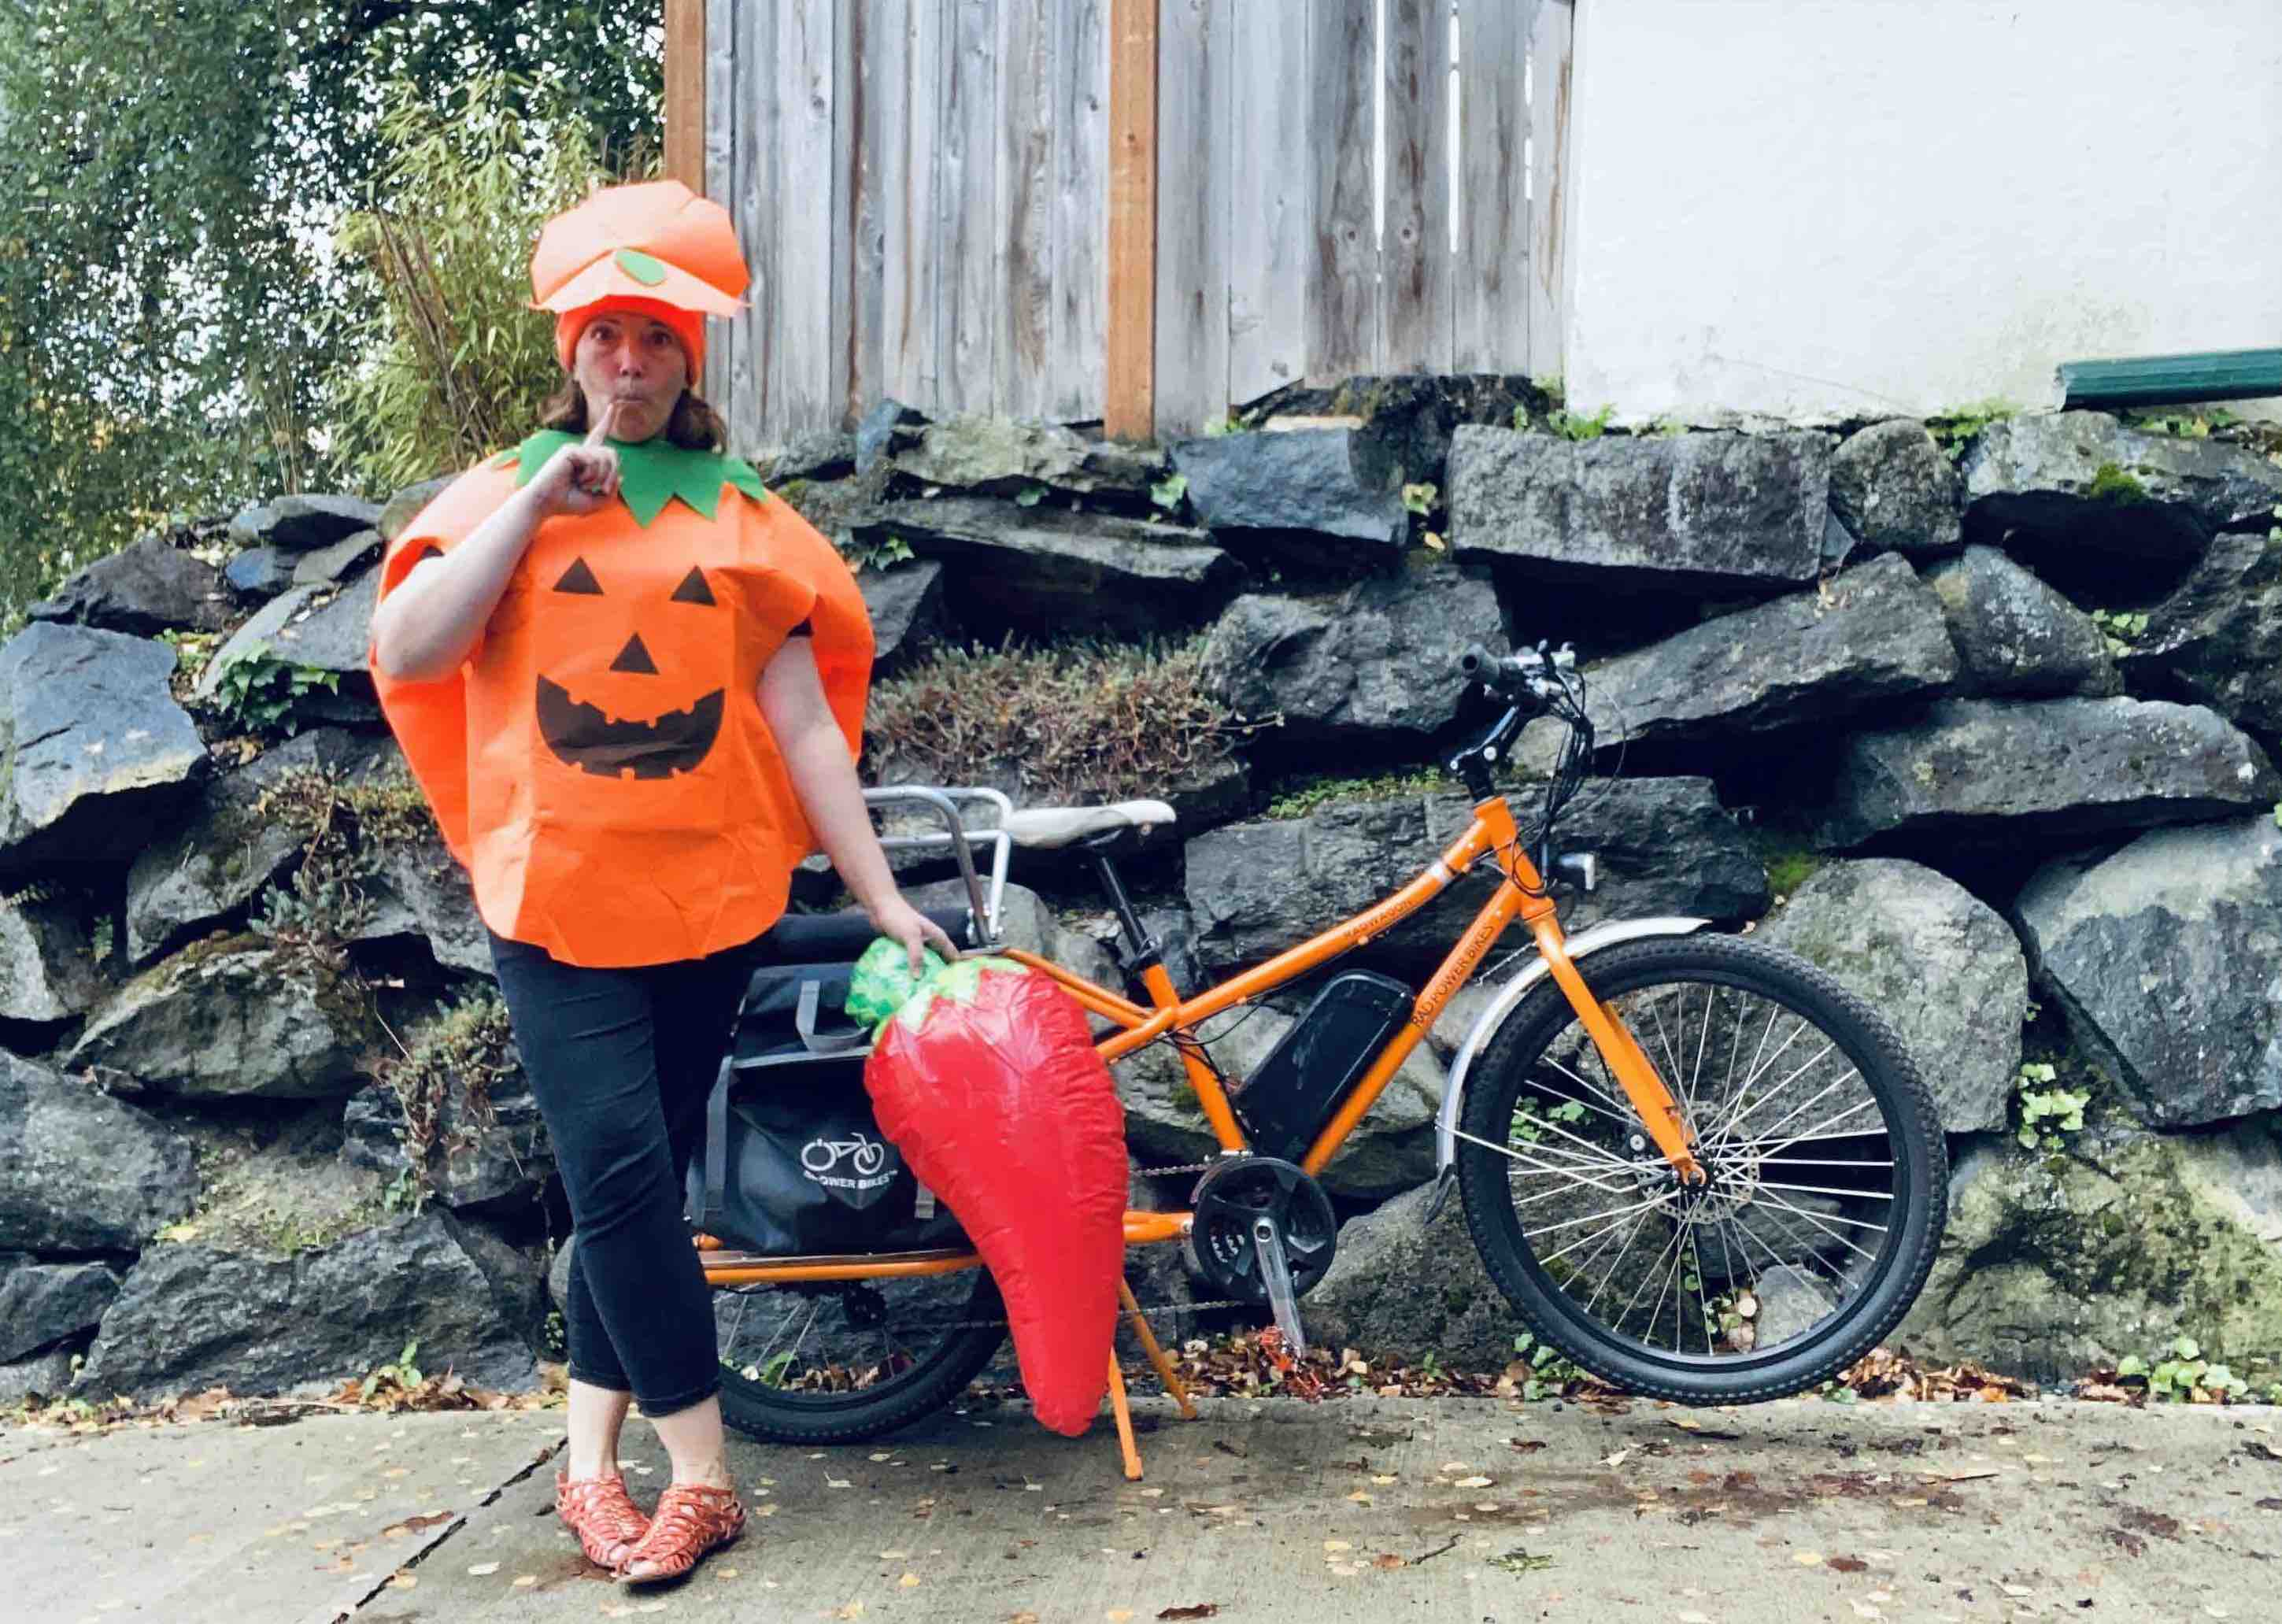 A woman dressed in a Halloween costume stands next to her RadWagon electric metro bike.